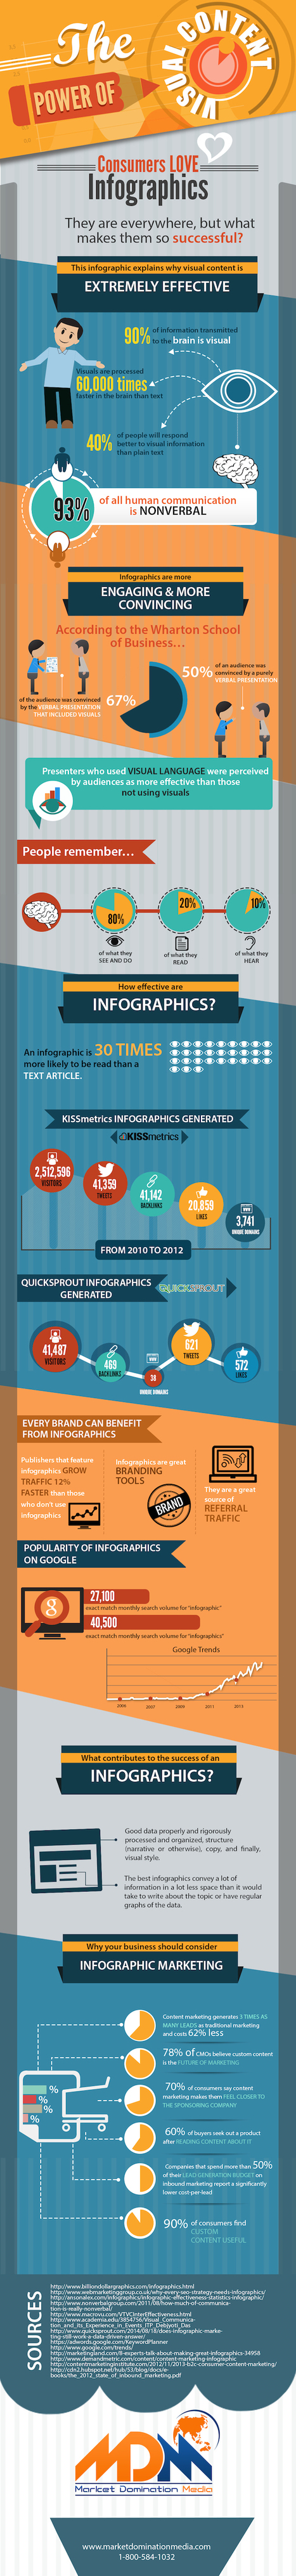 Why Visual Content Marketing Delivers Results [Infographic] | SEJ | Integrated Brand Communications | Scoop.it